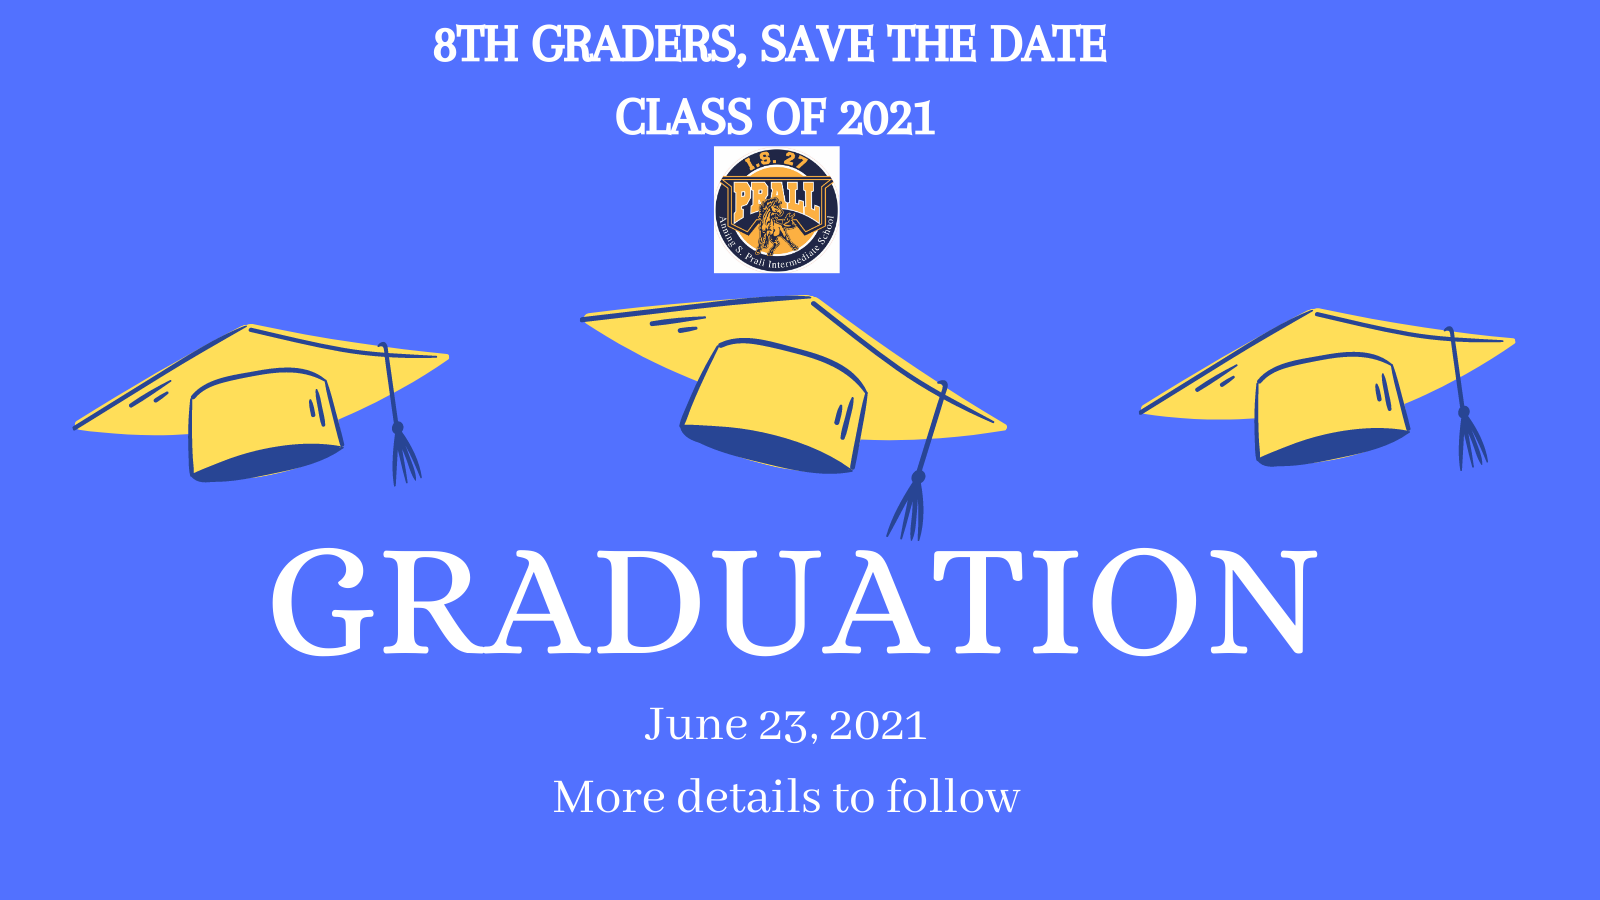 Eighth Graders Save the Date. Graduation June 23, 2021 More Details to follow